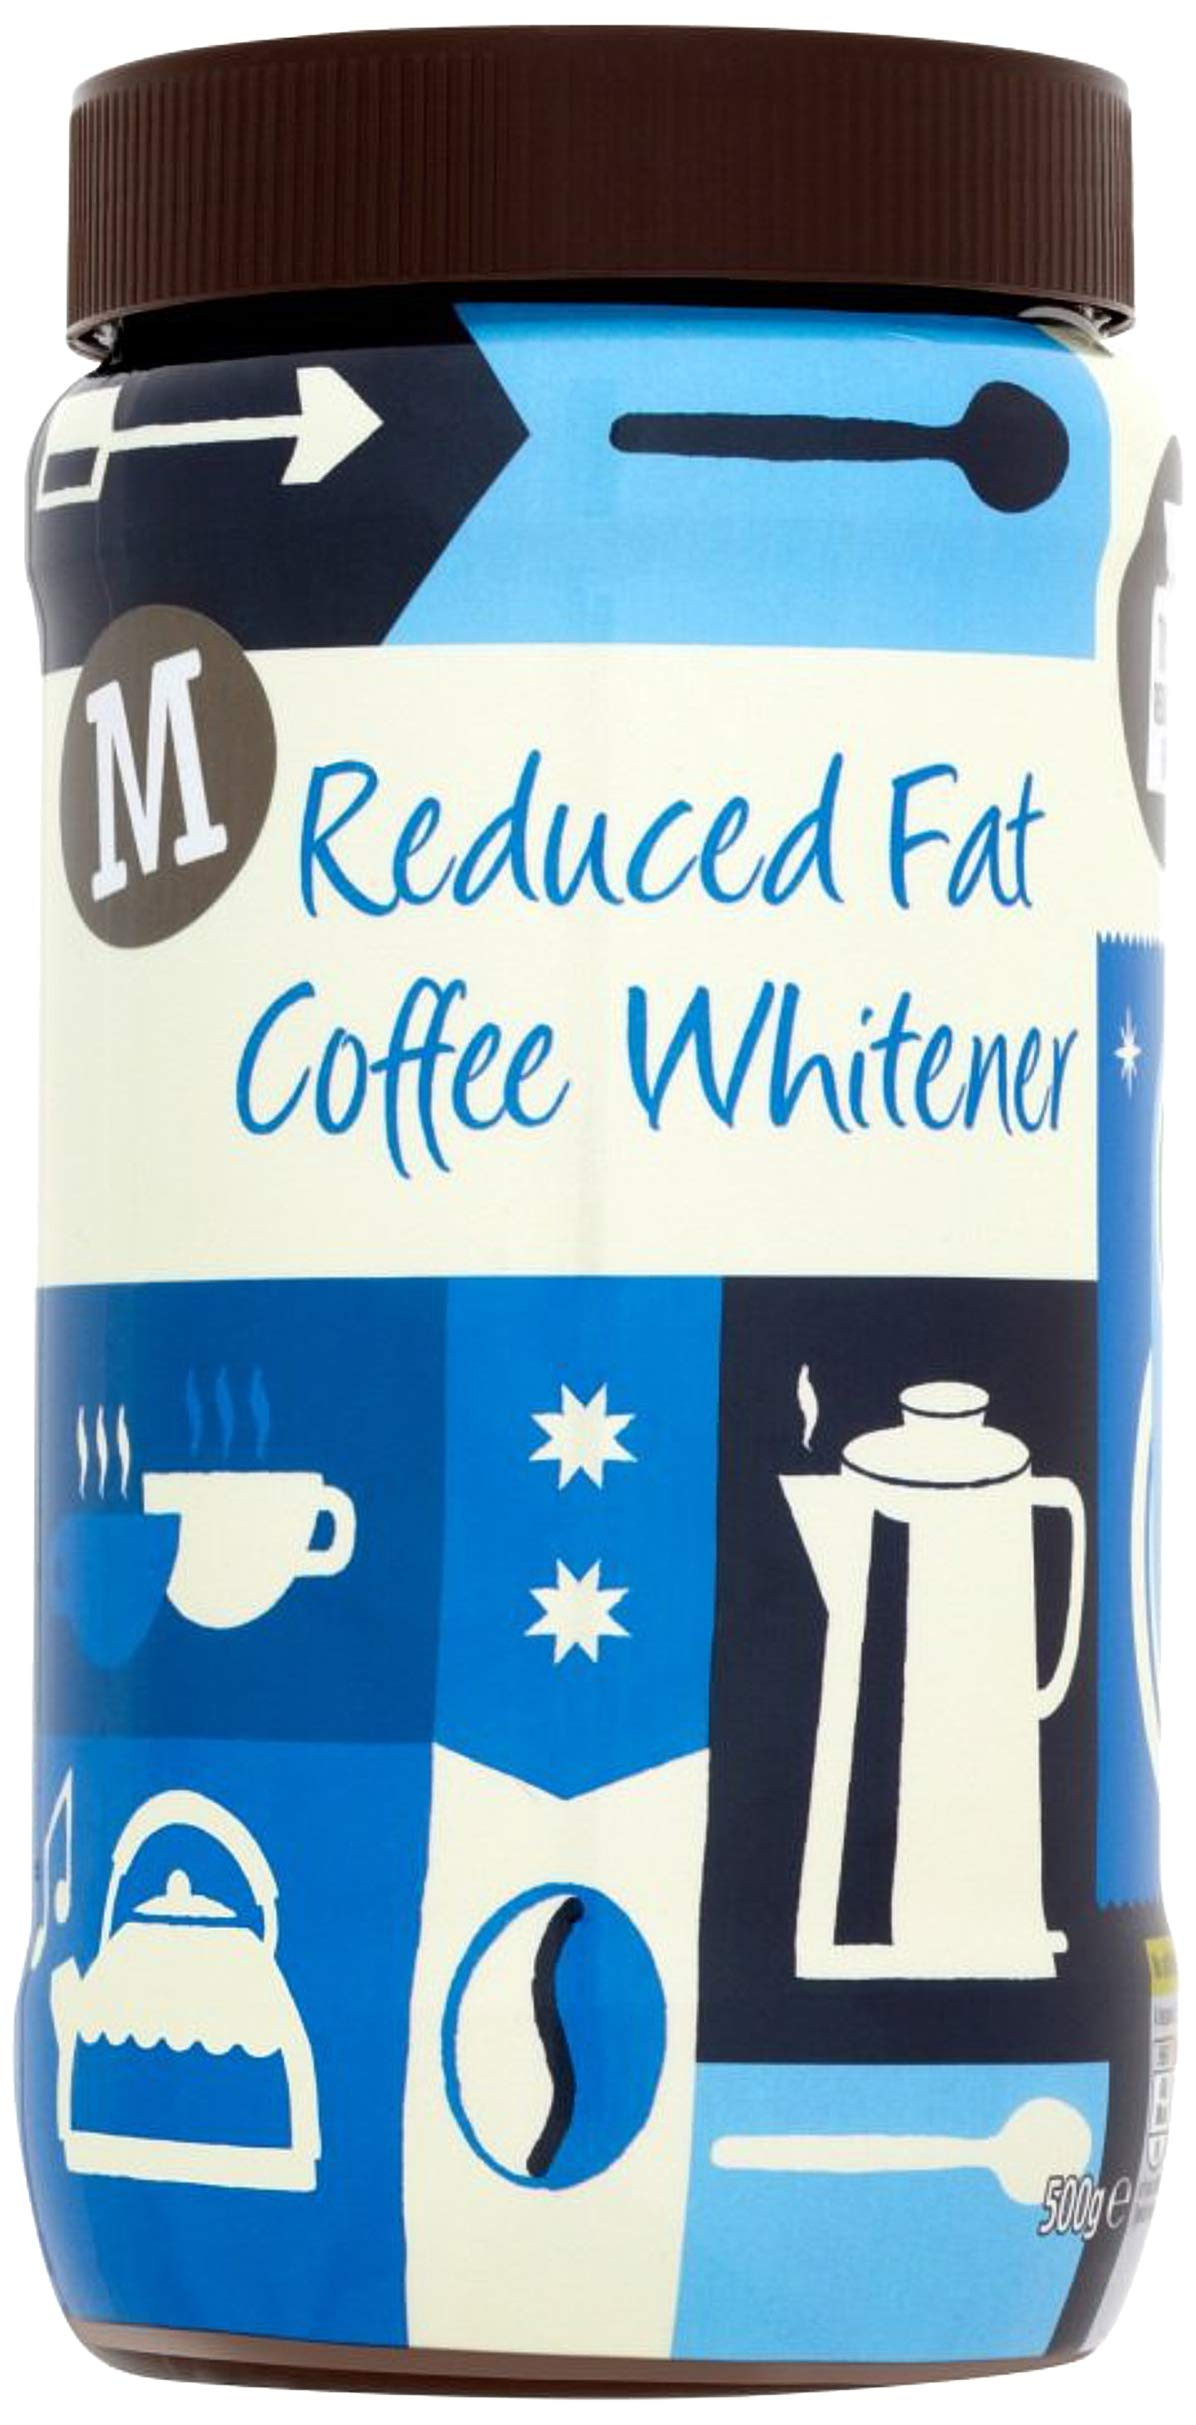 Morrisons Reduced Fat Coffee Whitener, 500 g